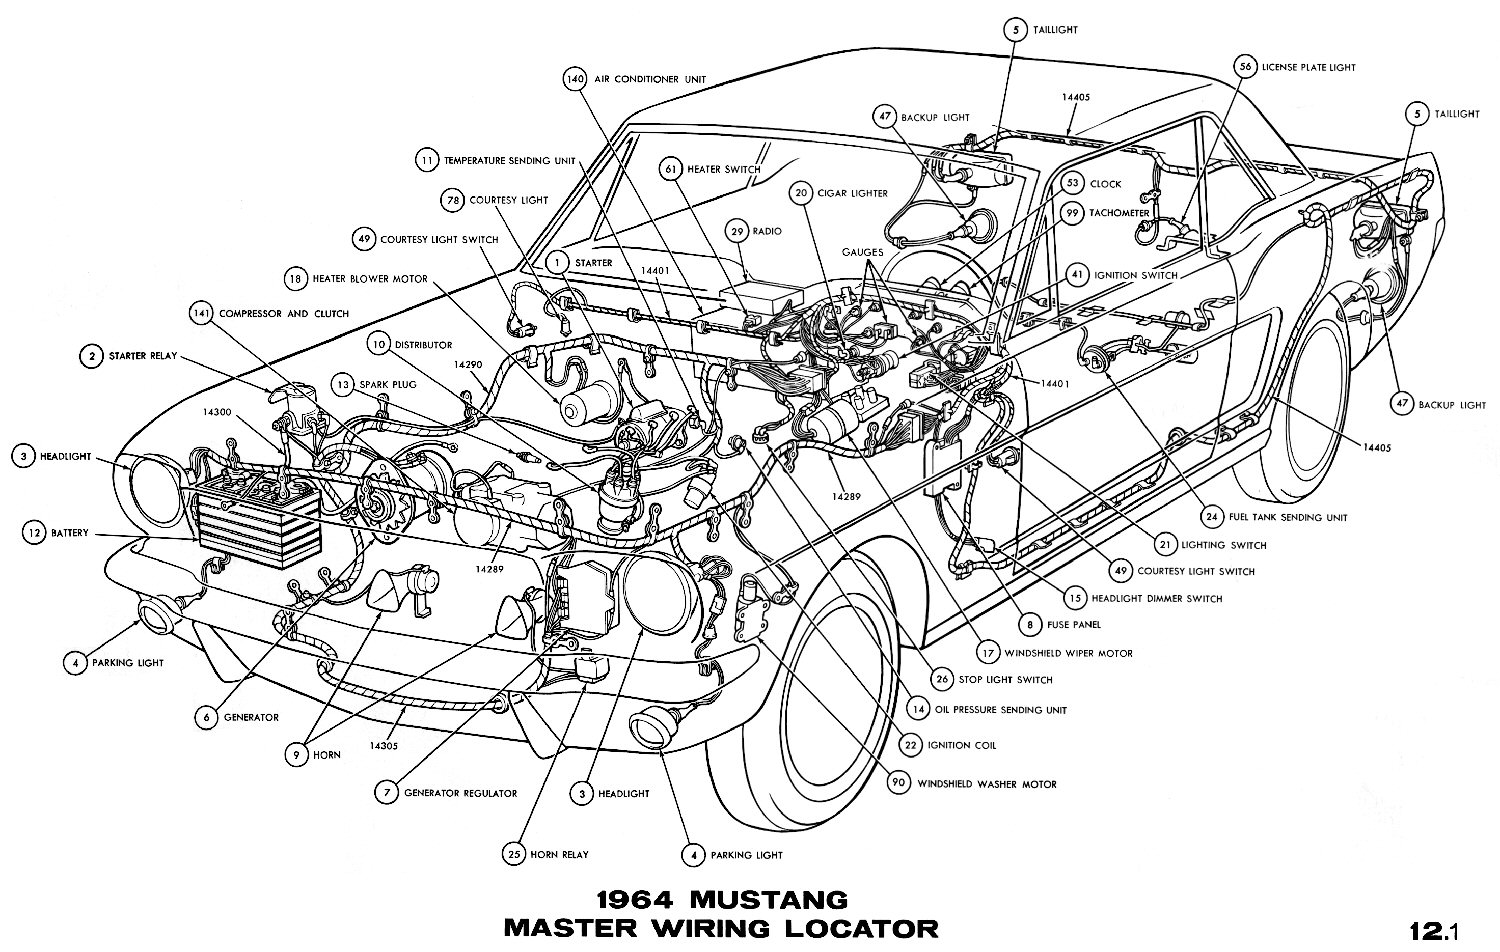 1970 Mustang Engine Diagram - Block And Schematic Diagrams •